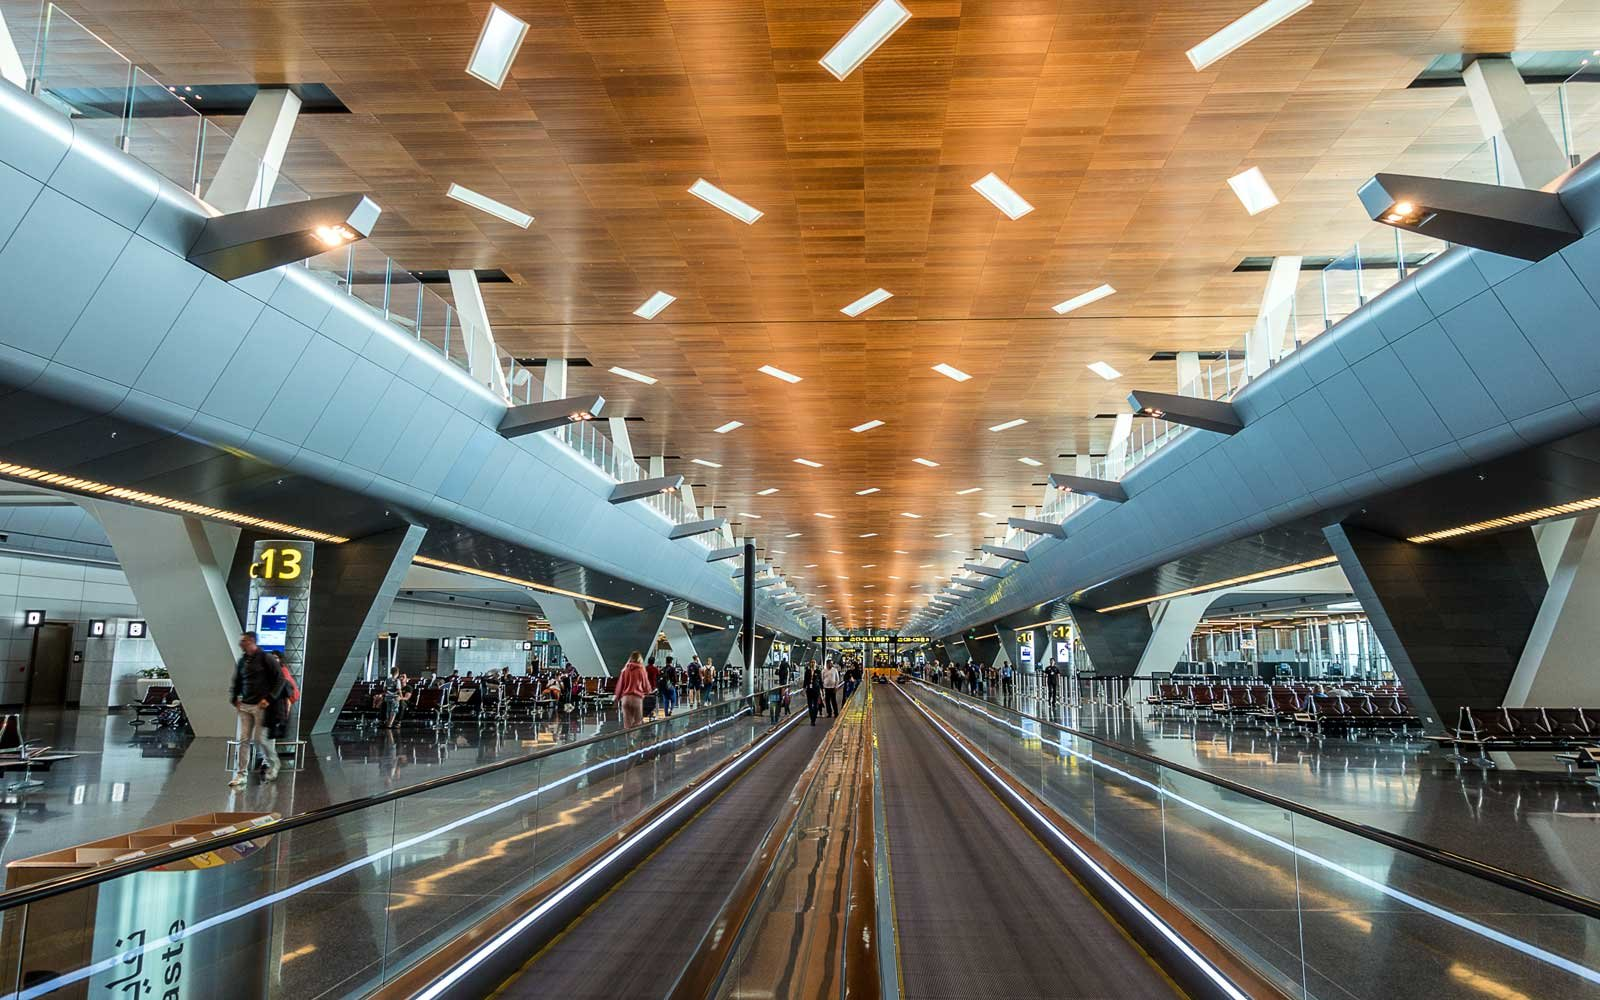 Hamad International Airport in Doha, Qatar